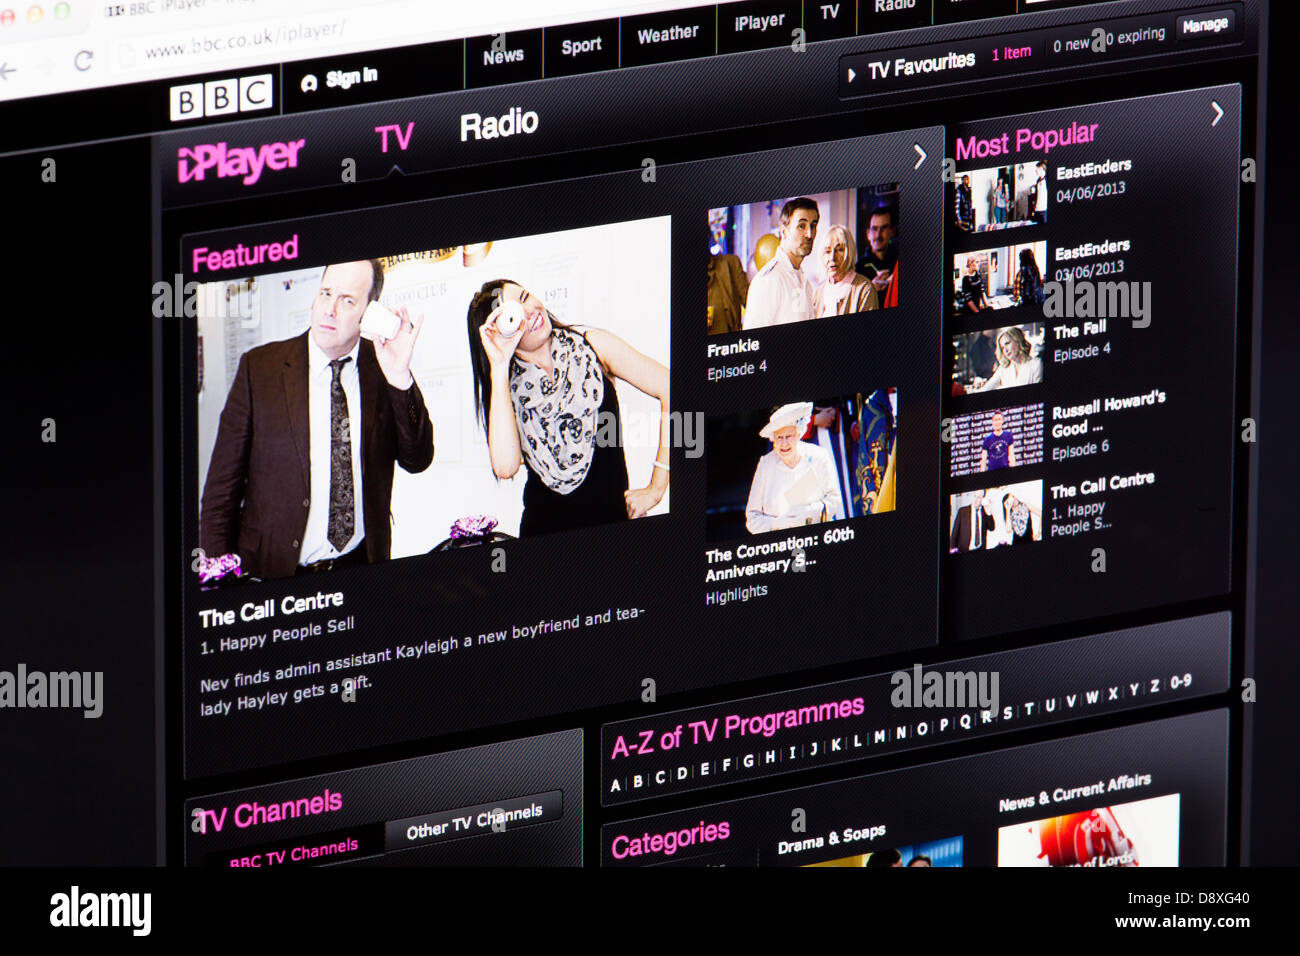 BBC iPlayer TV and Radio Streaming Website or web page on a laptop screen or computer monitor - Stock Image